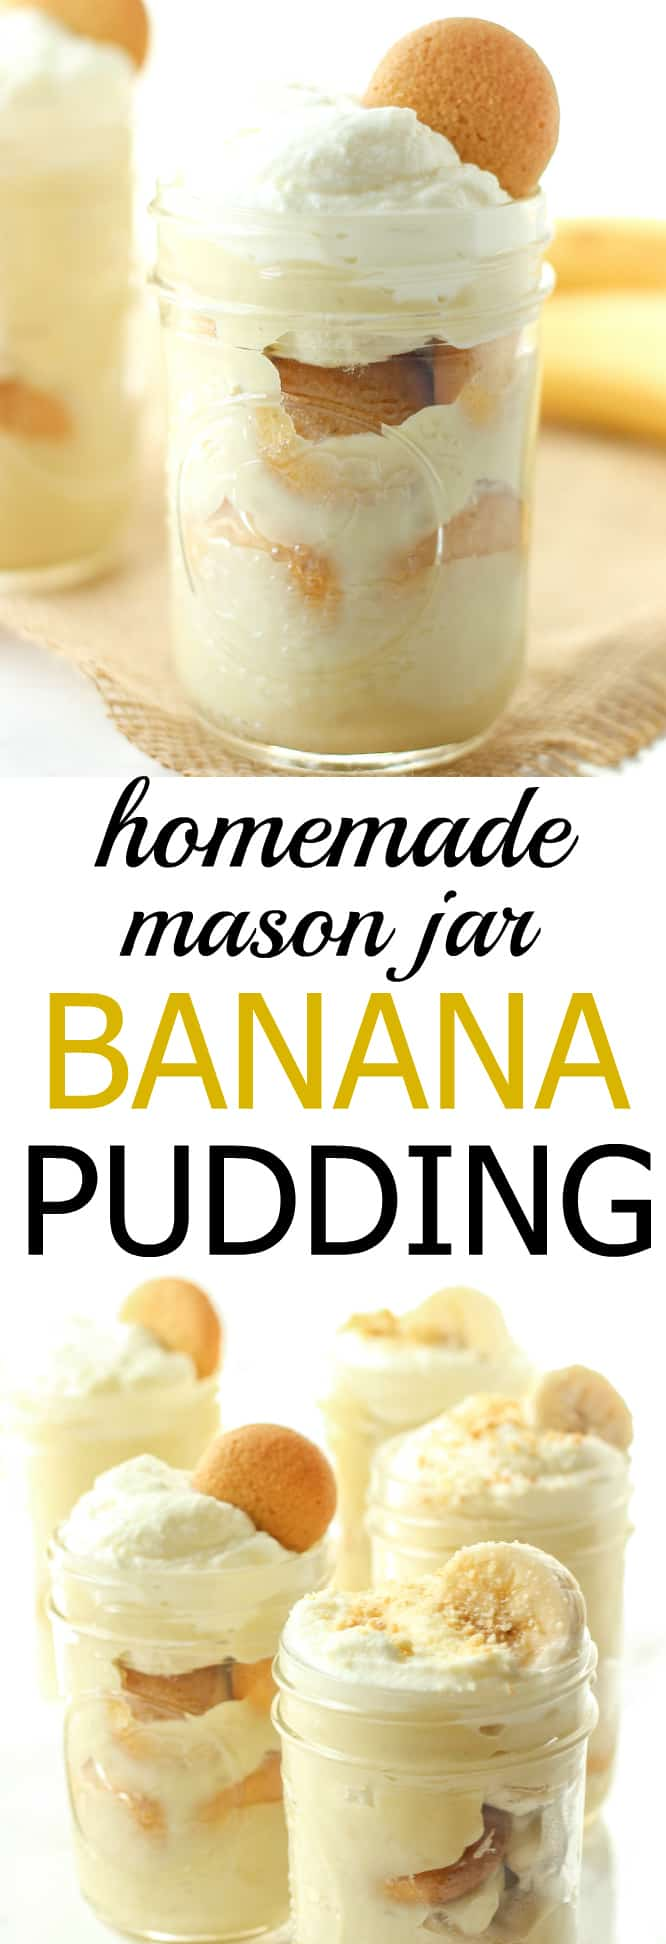 This mason jar banana pudding is 100% homemade and has all real ingredients!